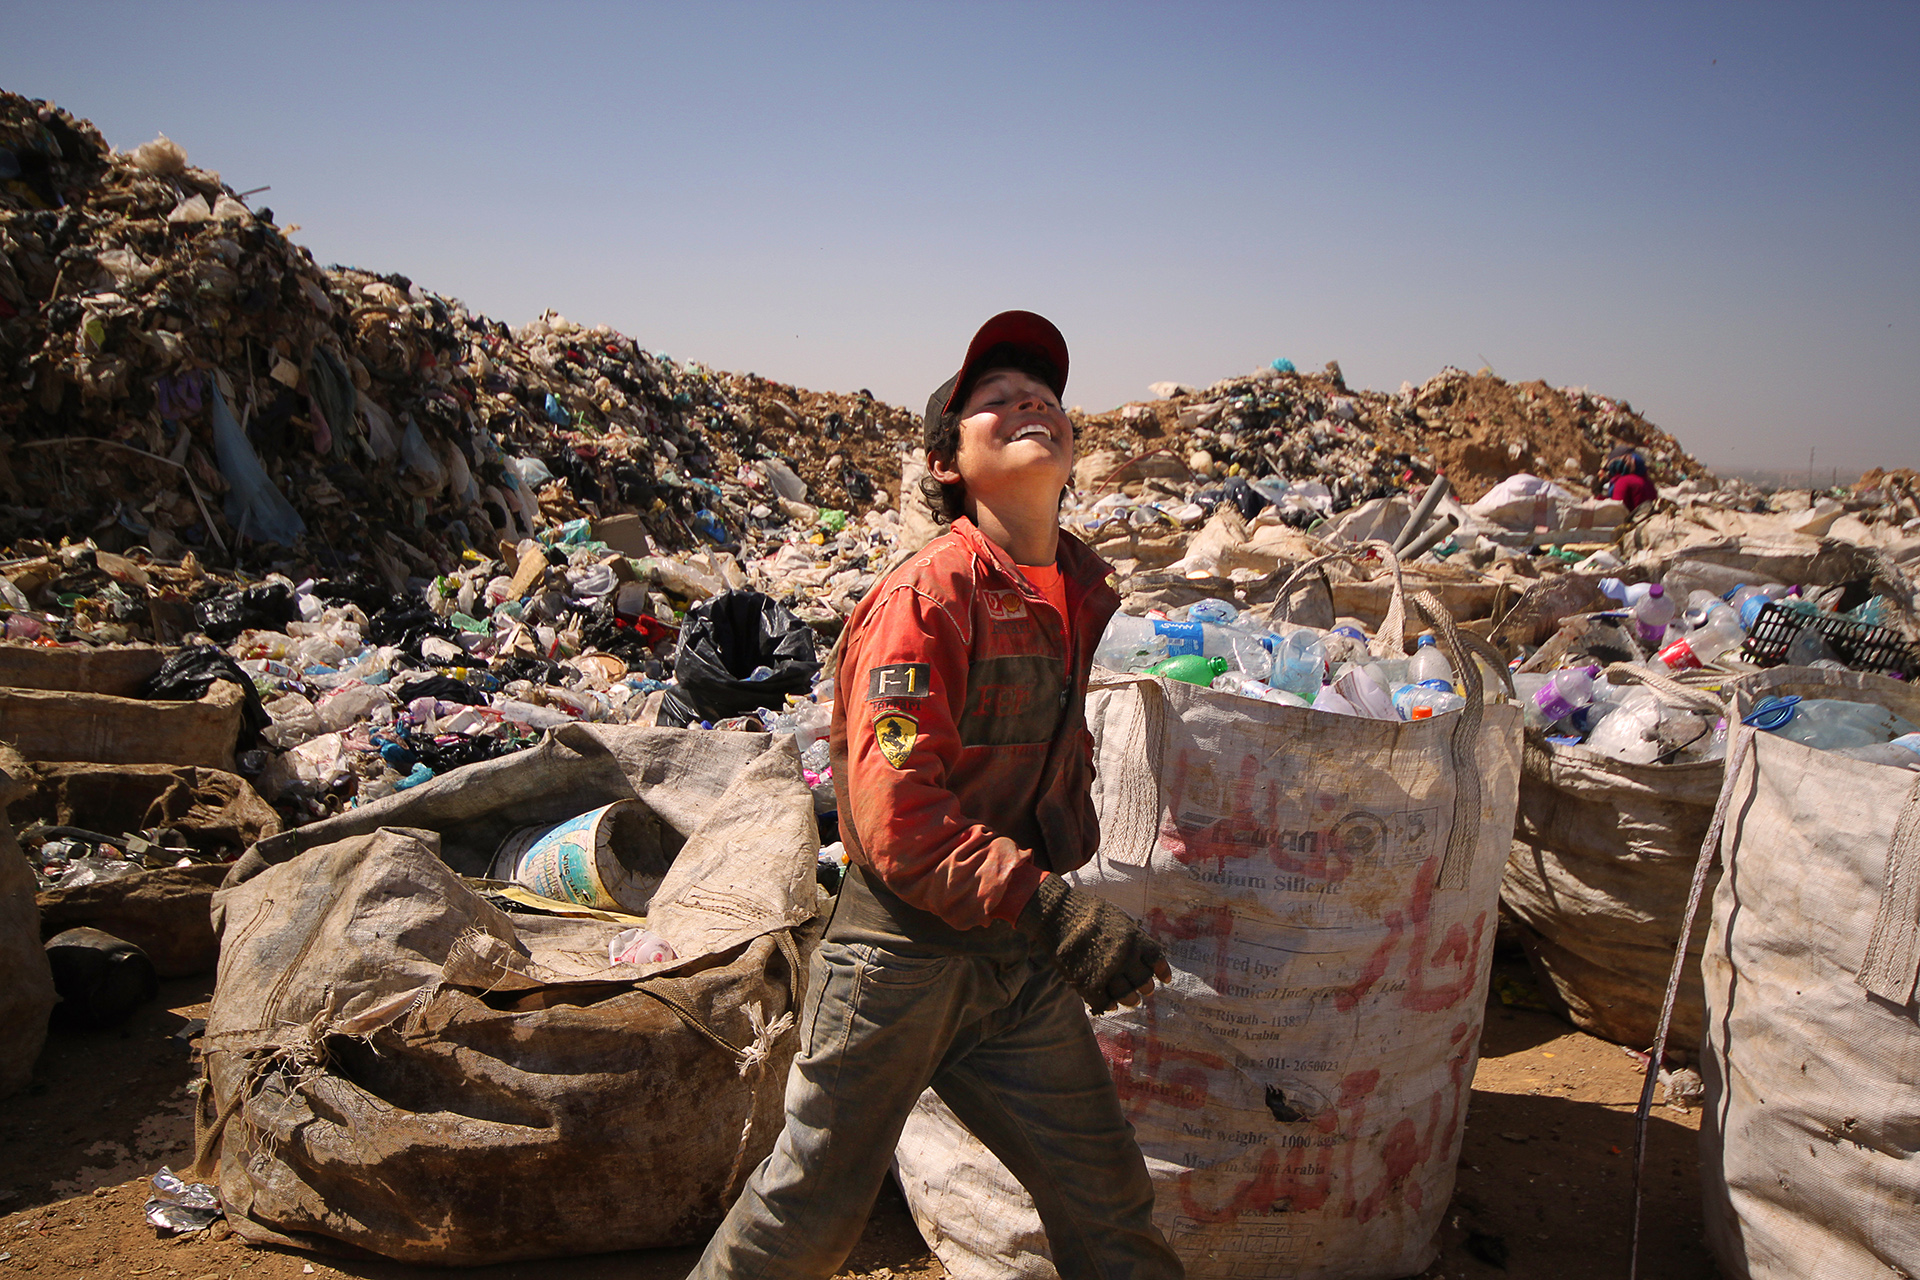 Young Syrian refugee buy working at Jordan's Al-Elhysniat Landfill-Site, near the Syrian border. His F1 jacket belies the terrible working conditions and intense 40 degree heat.